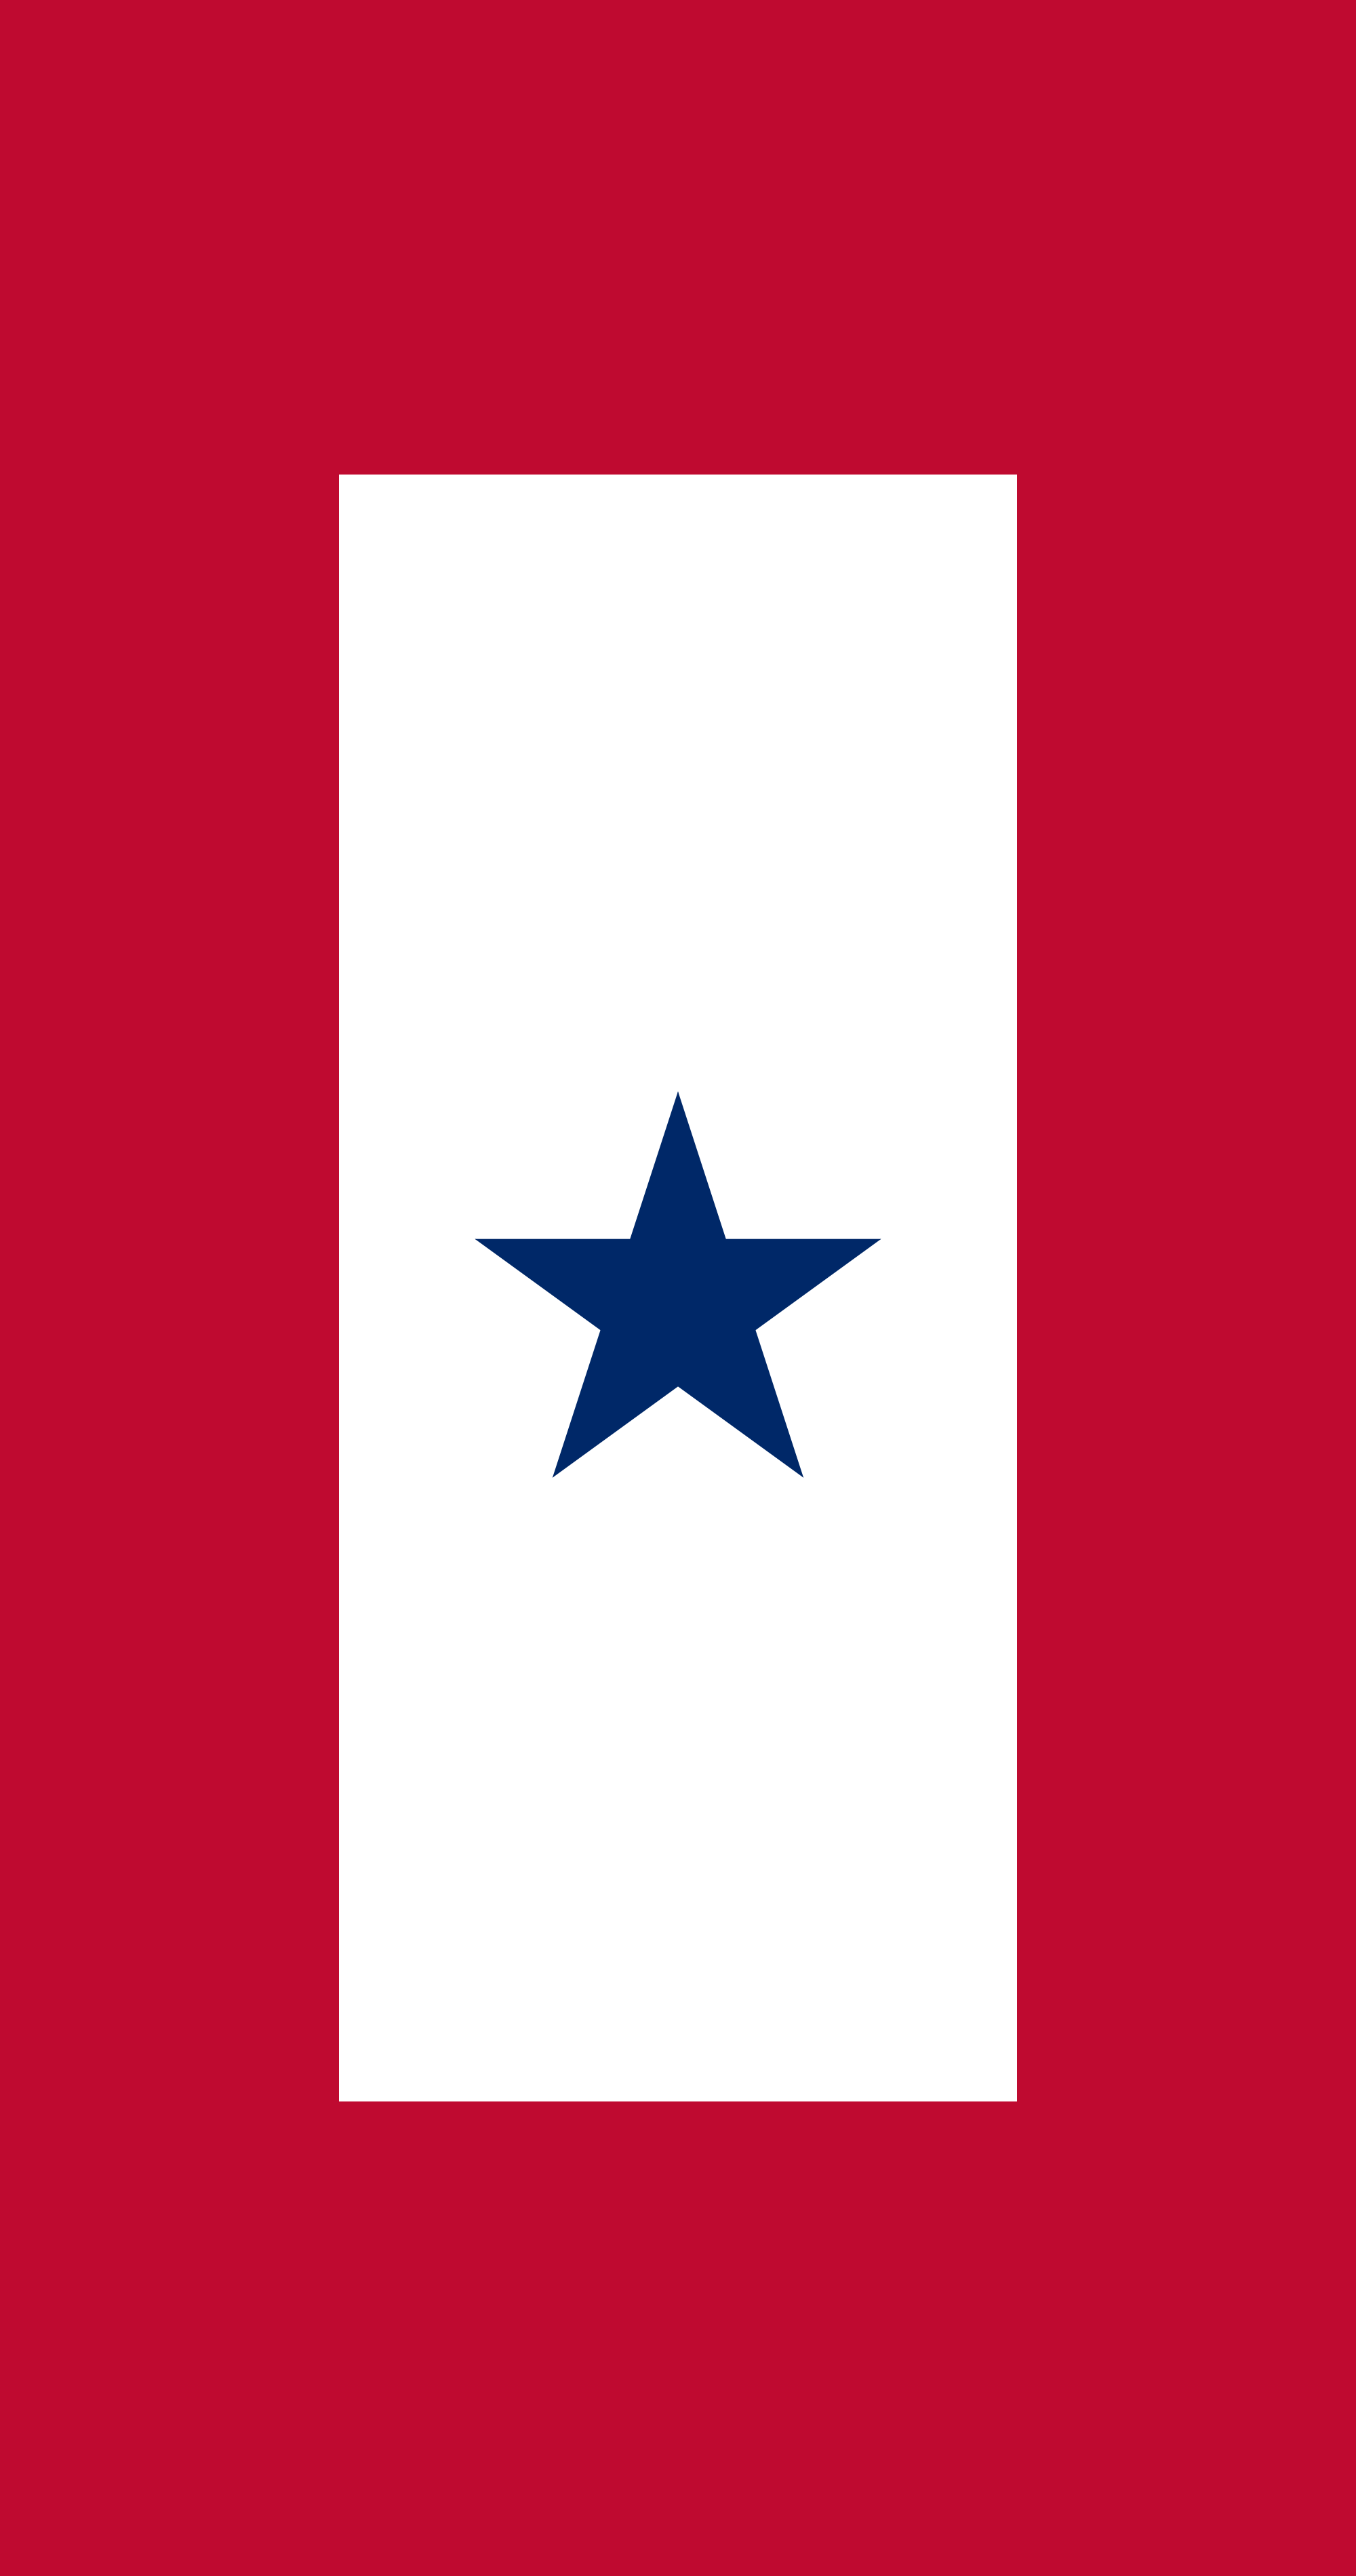 Service Flag Free Clipart.